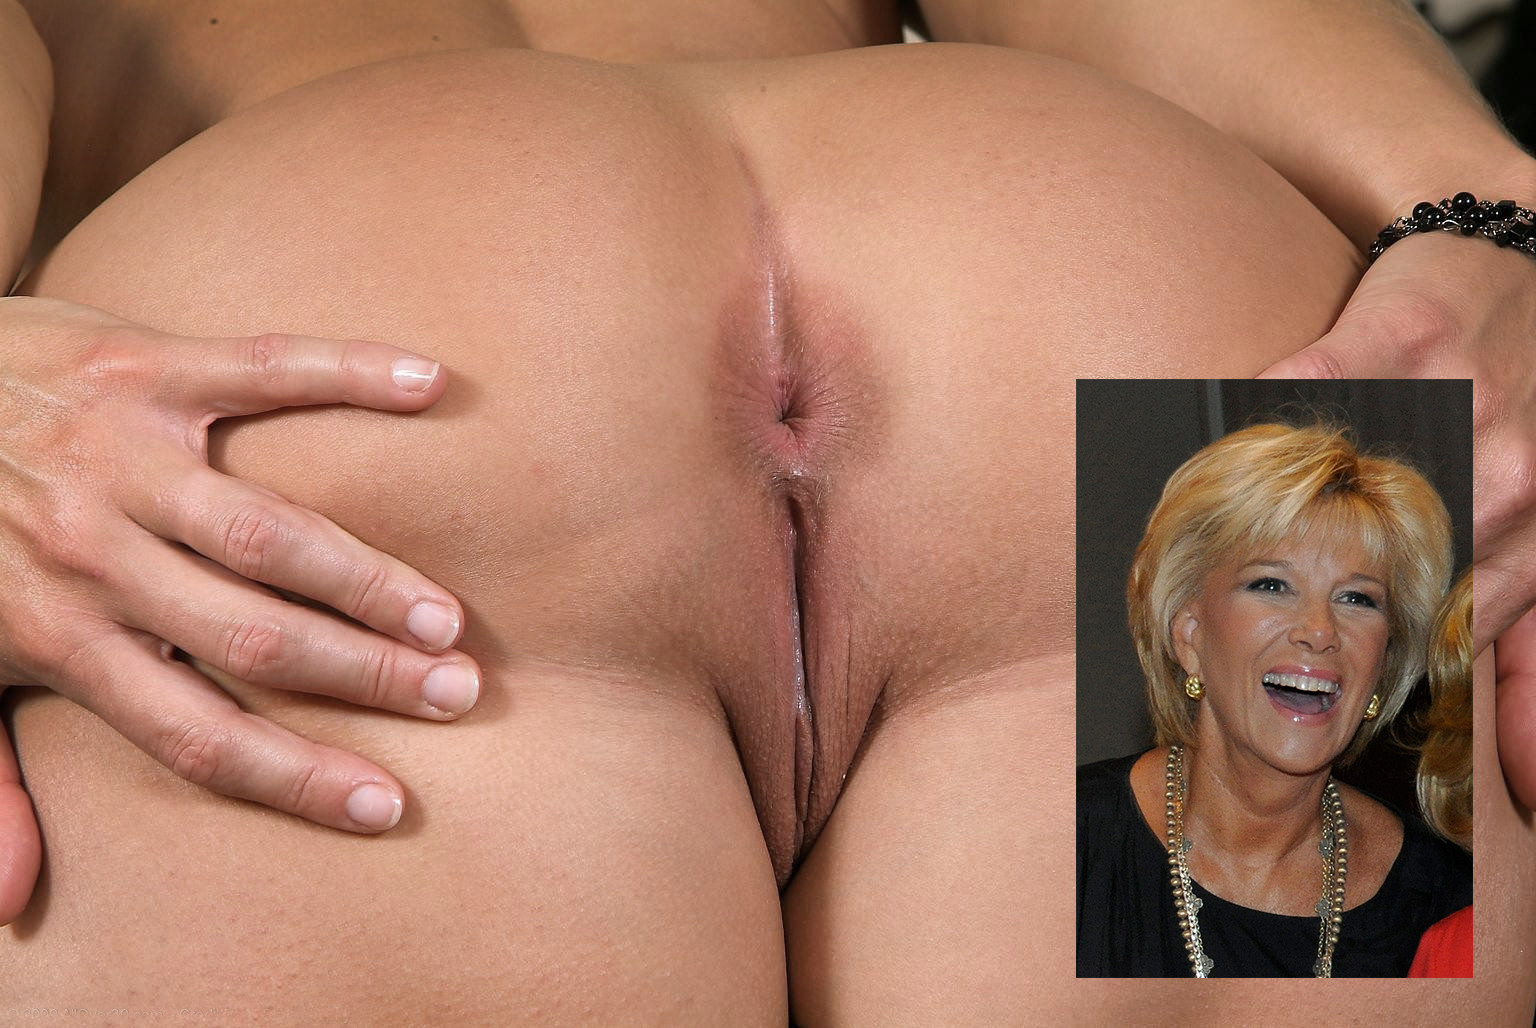 mature-woman-nude-shows-ass-hole-skinny-young-girls-fucked